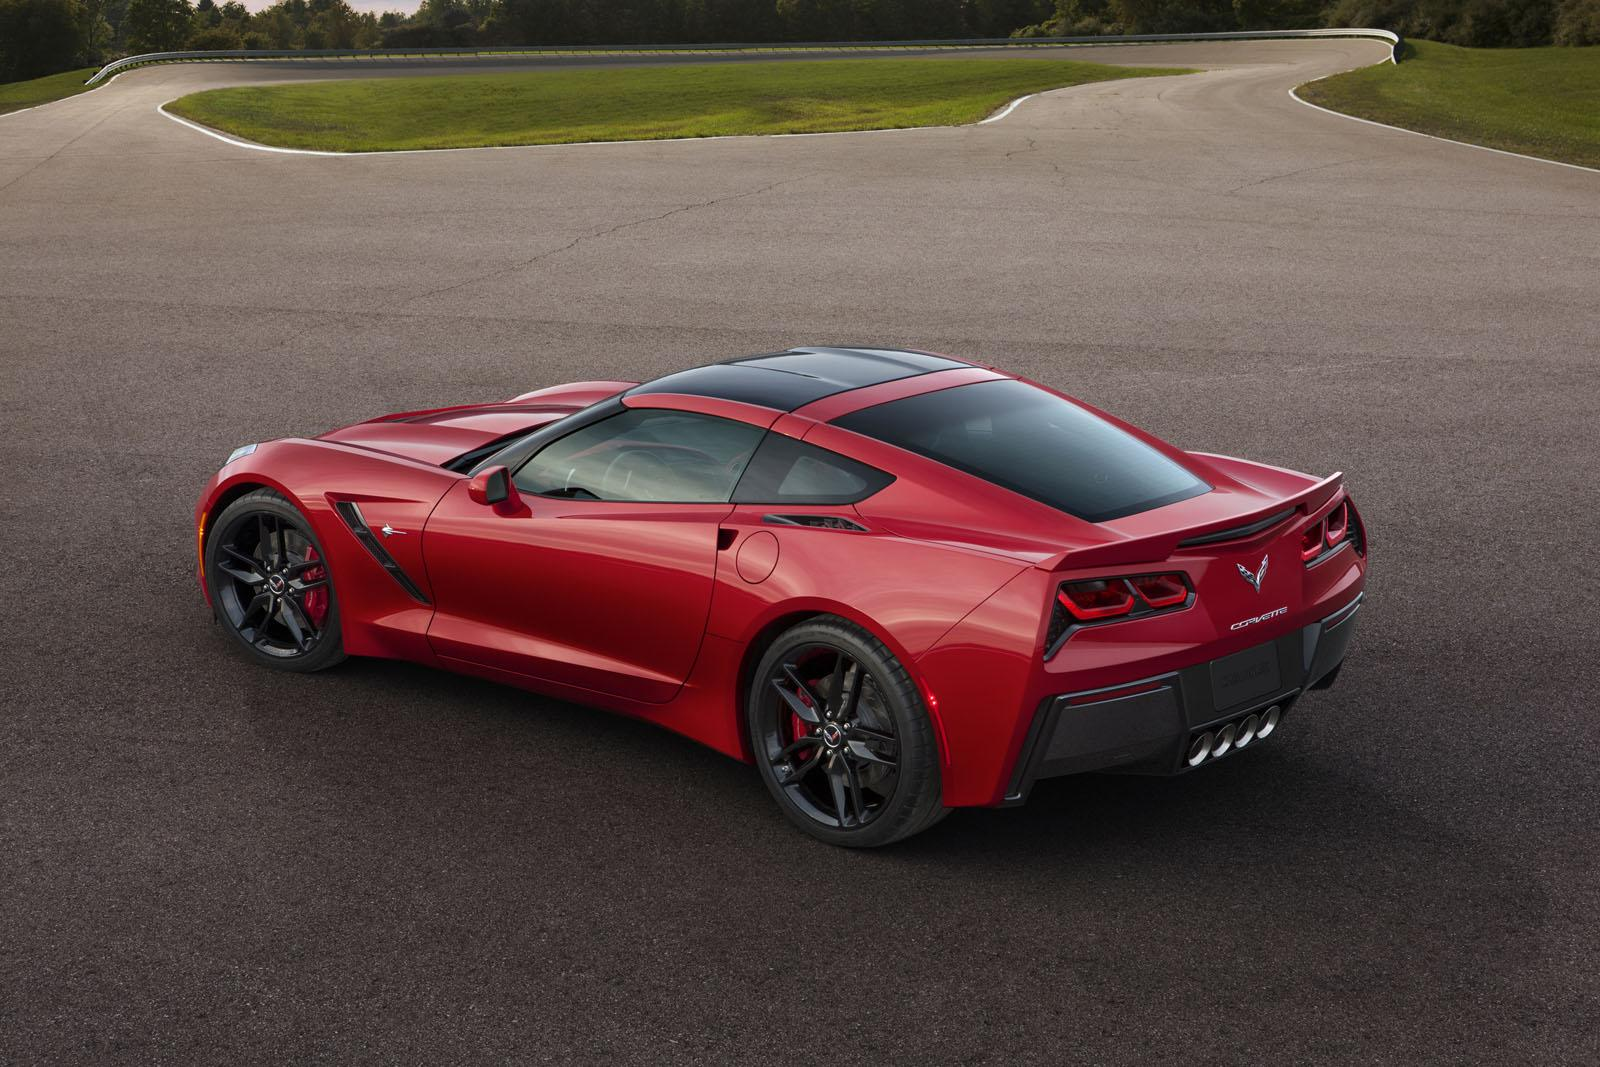 2014-Chevrolet-Corvette-Stingray-C7-2